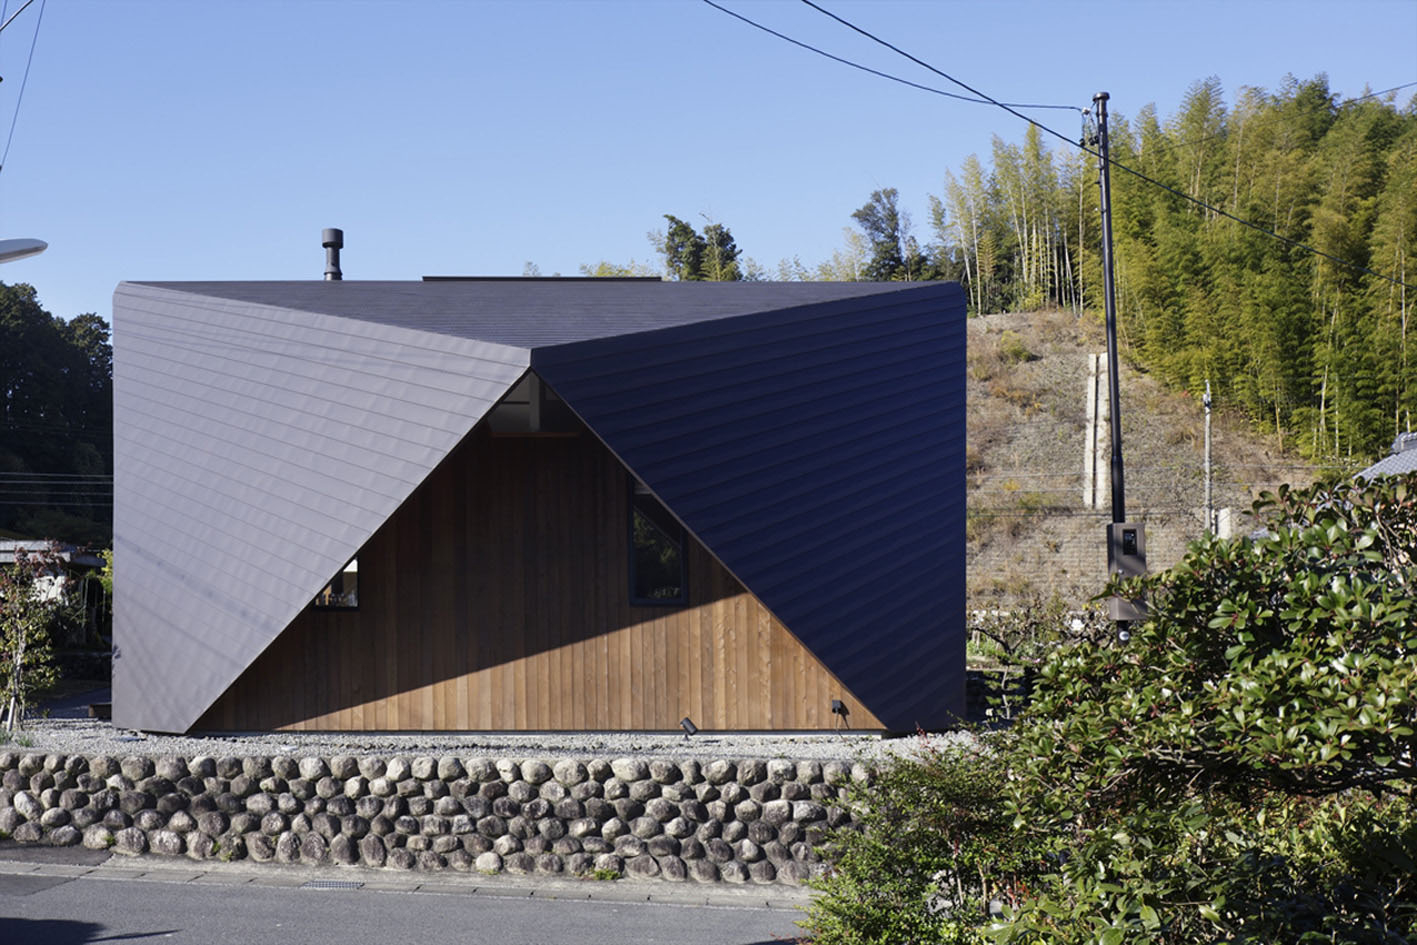 Origami Architecture Design Fascinating Origami House With Architectural Comfort Pockets